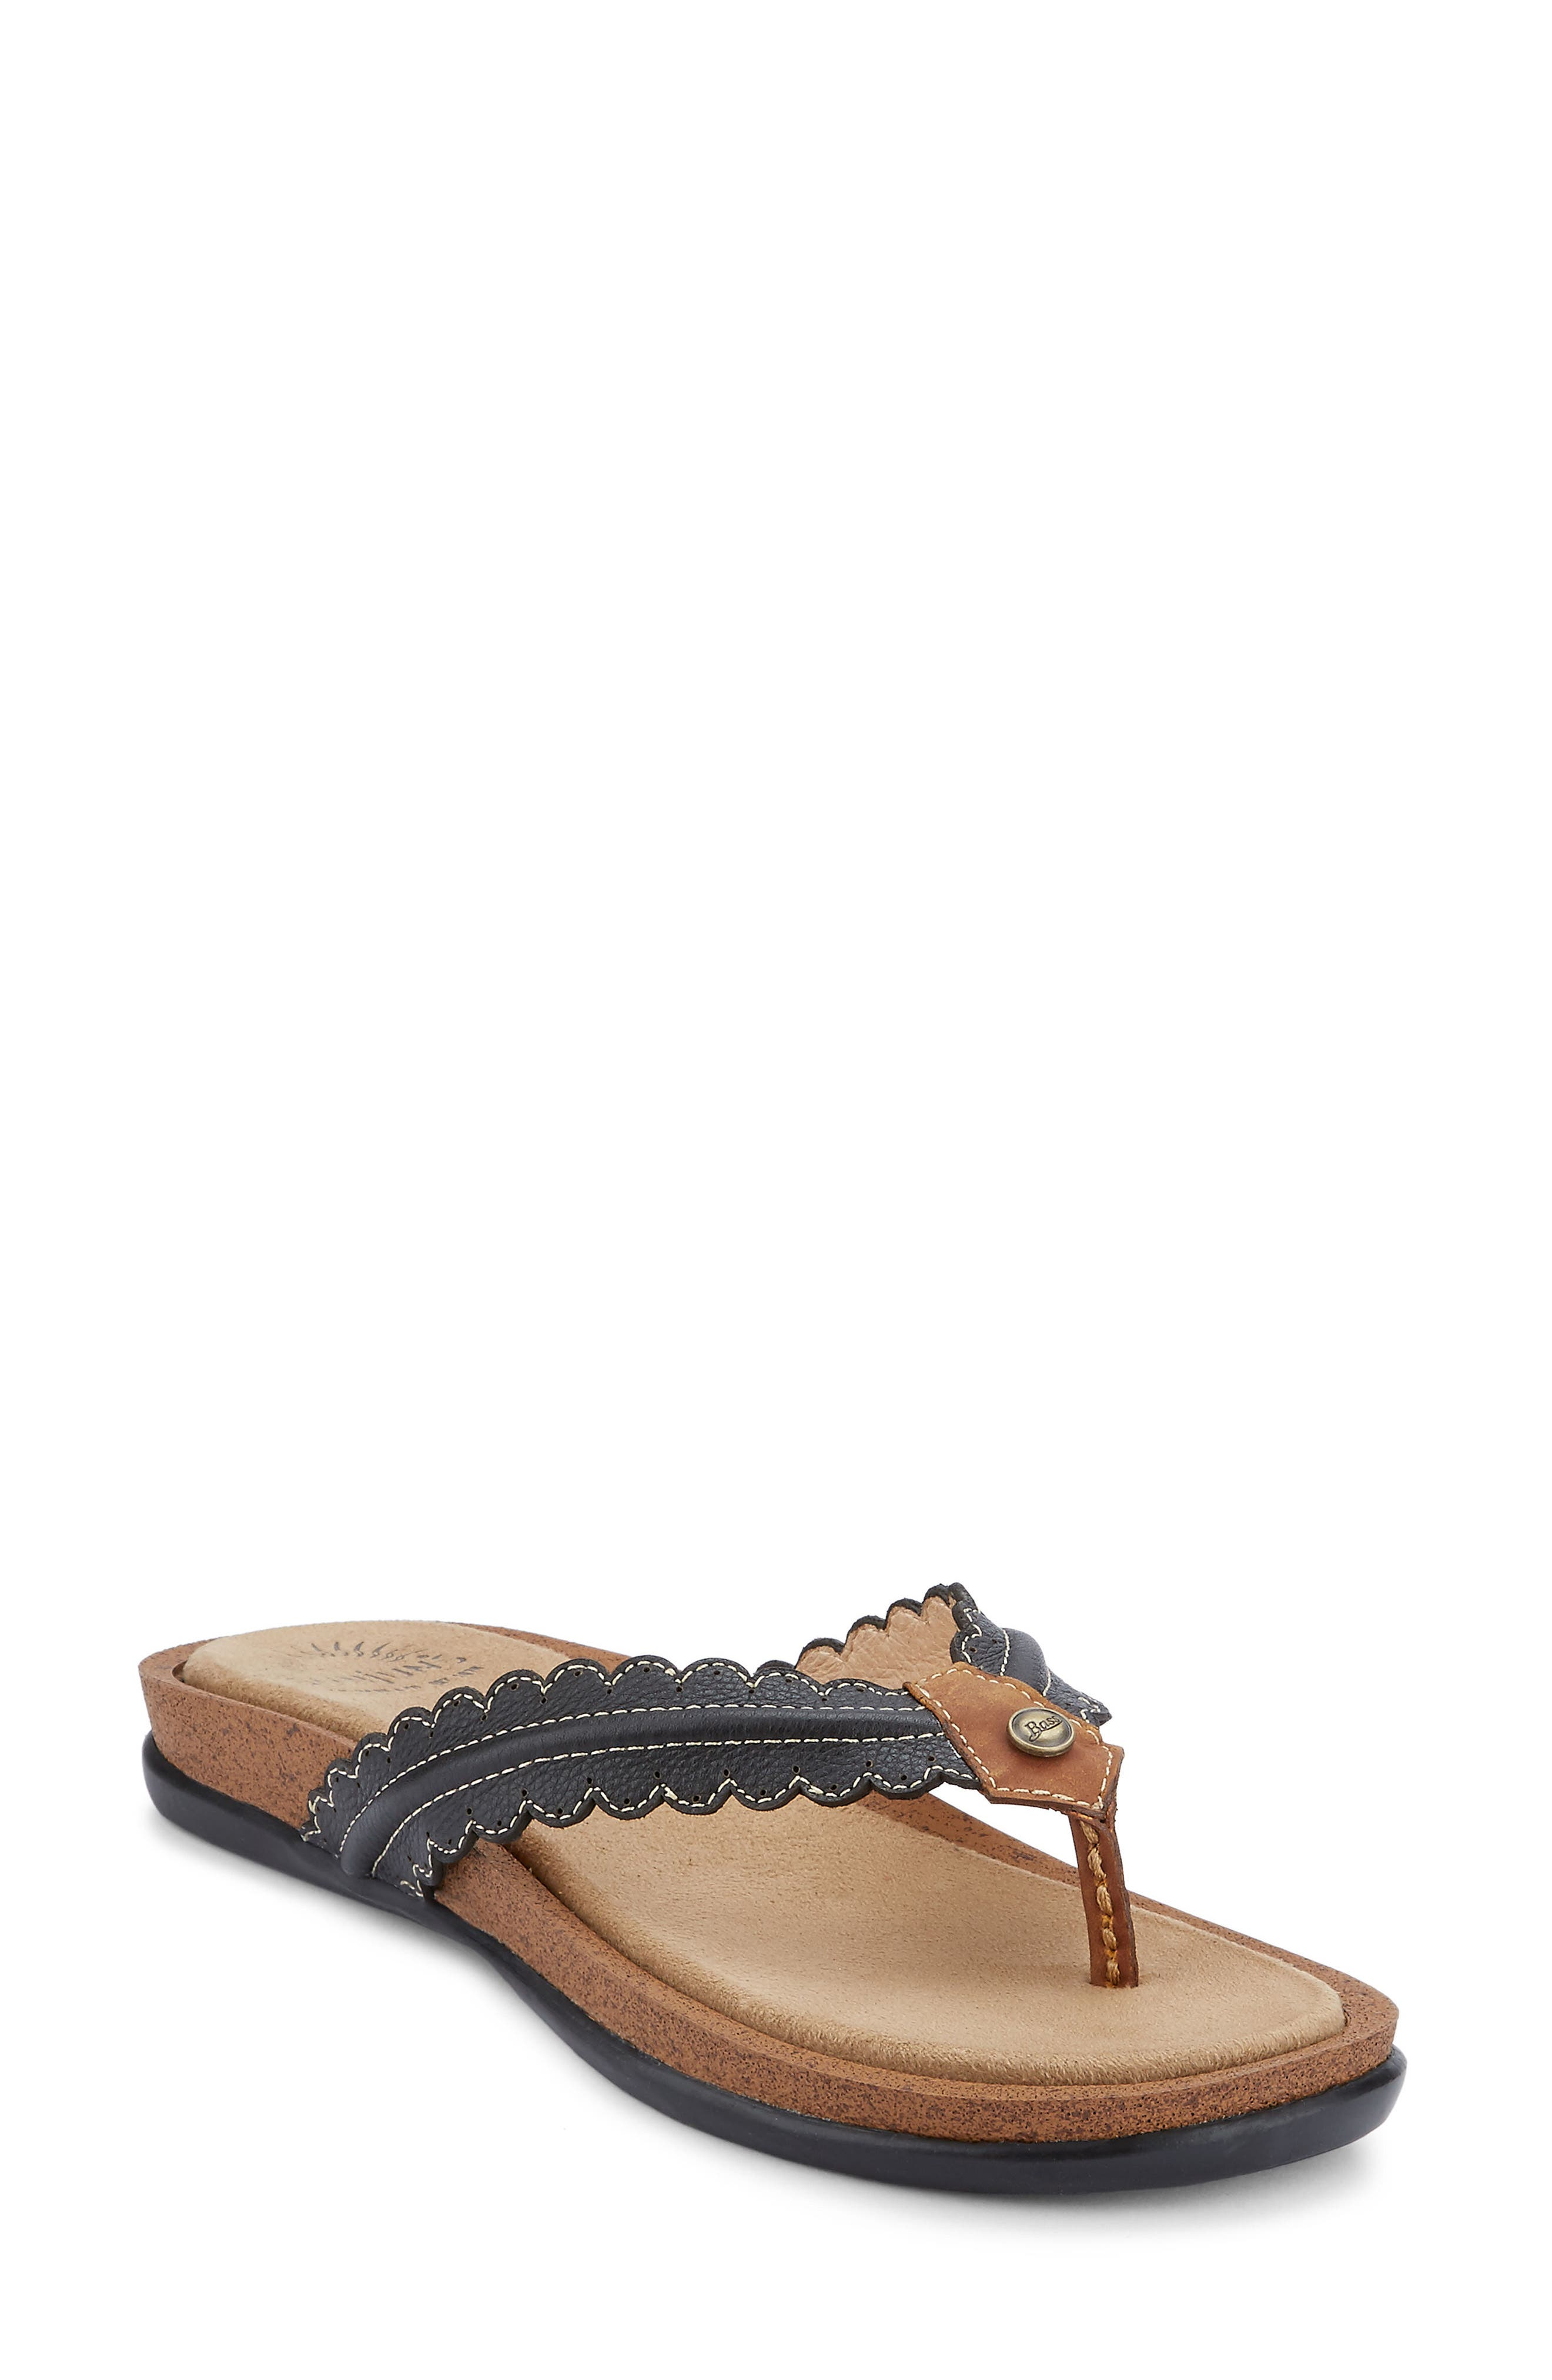 G.H. Bass and Co. Samantha Thong Sandal,                             Main thumbnail 1, color,